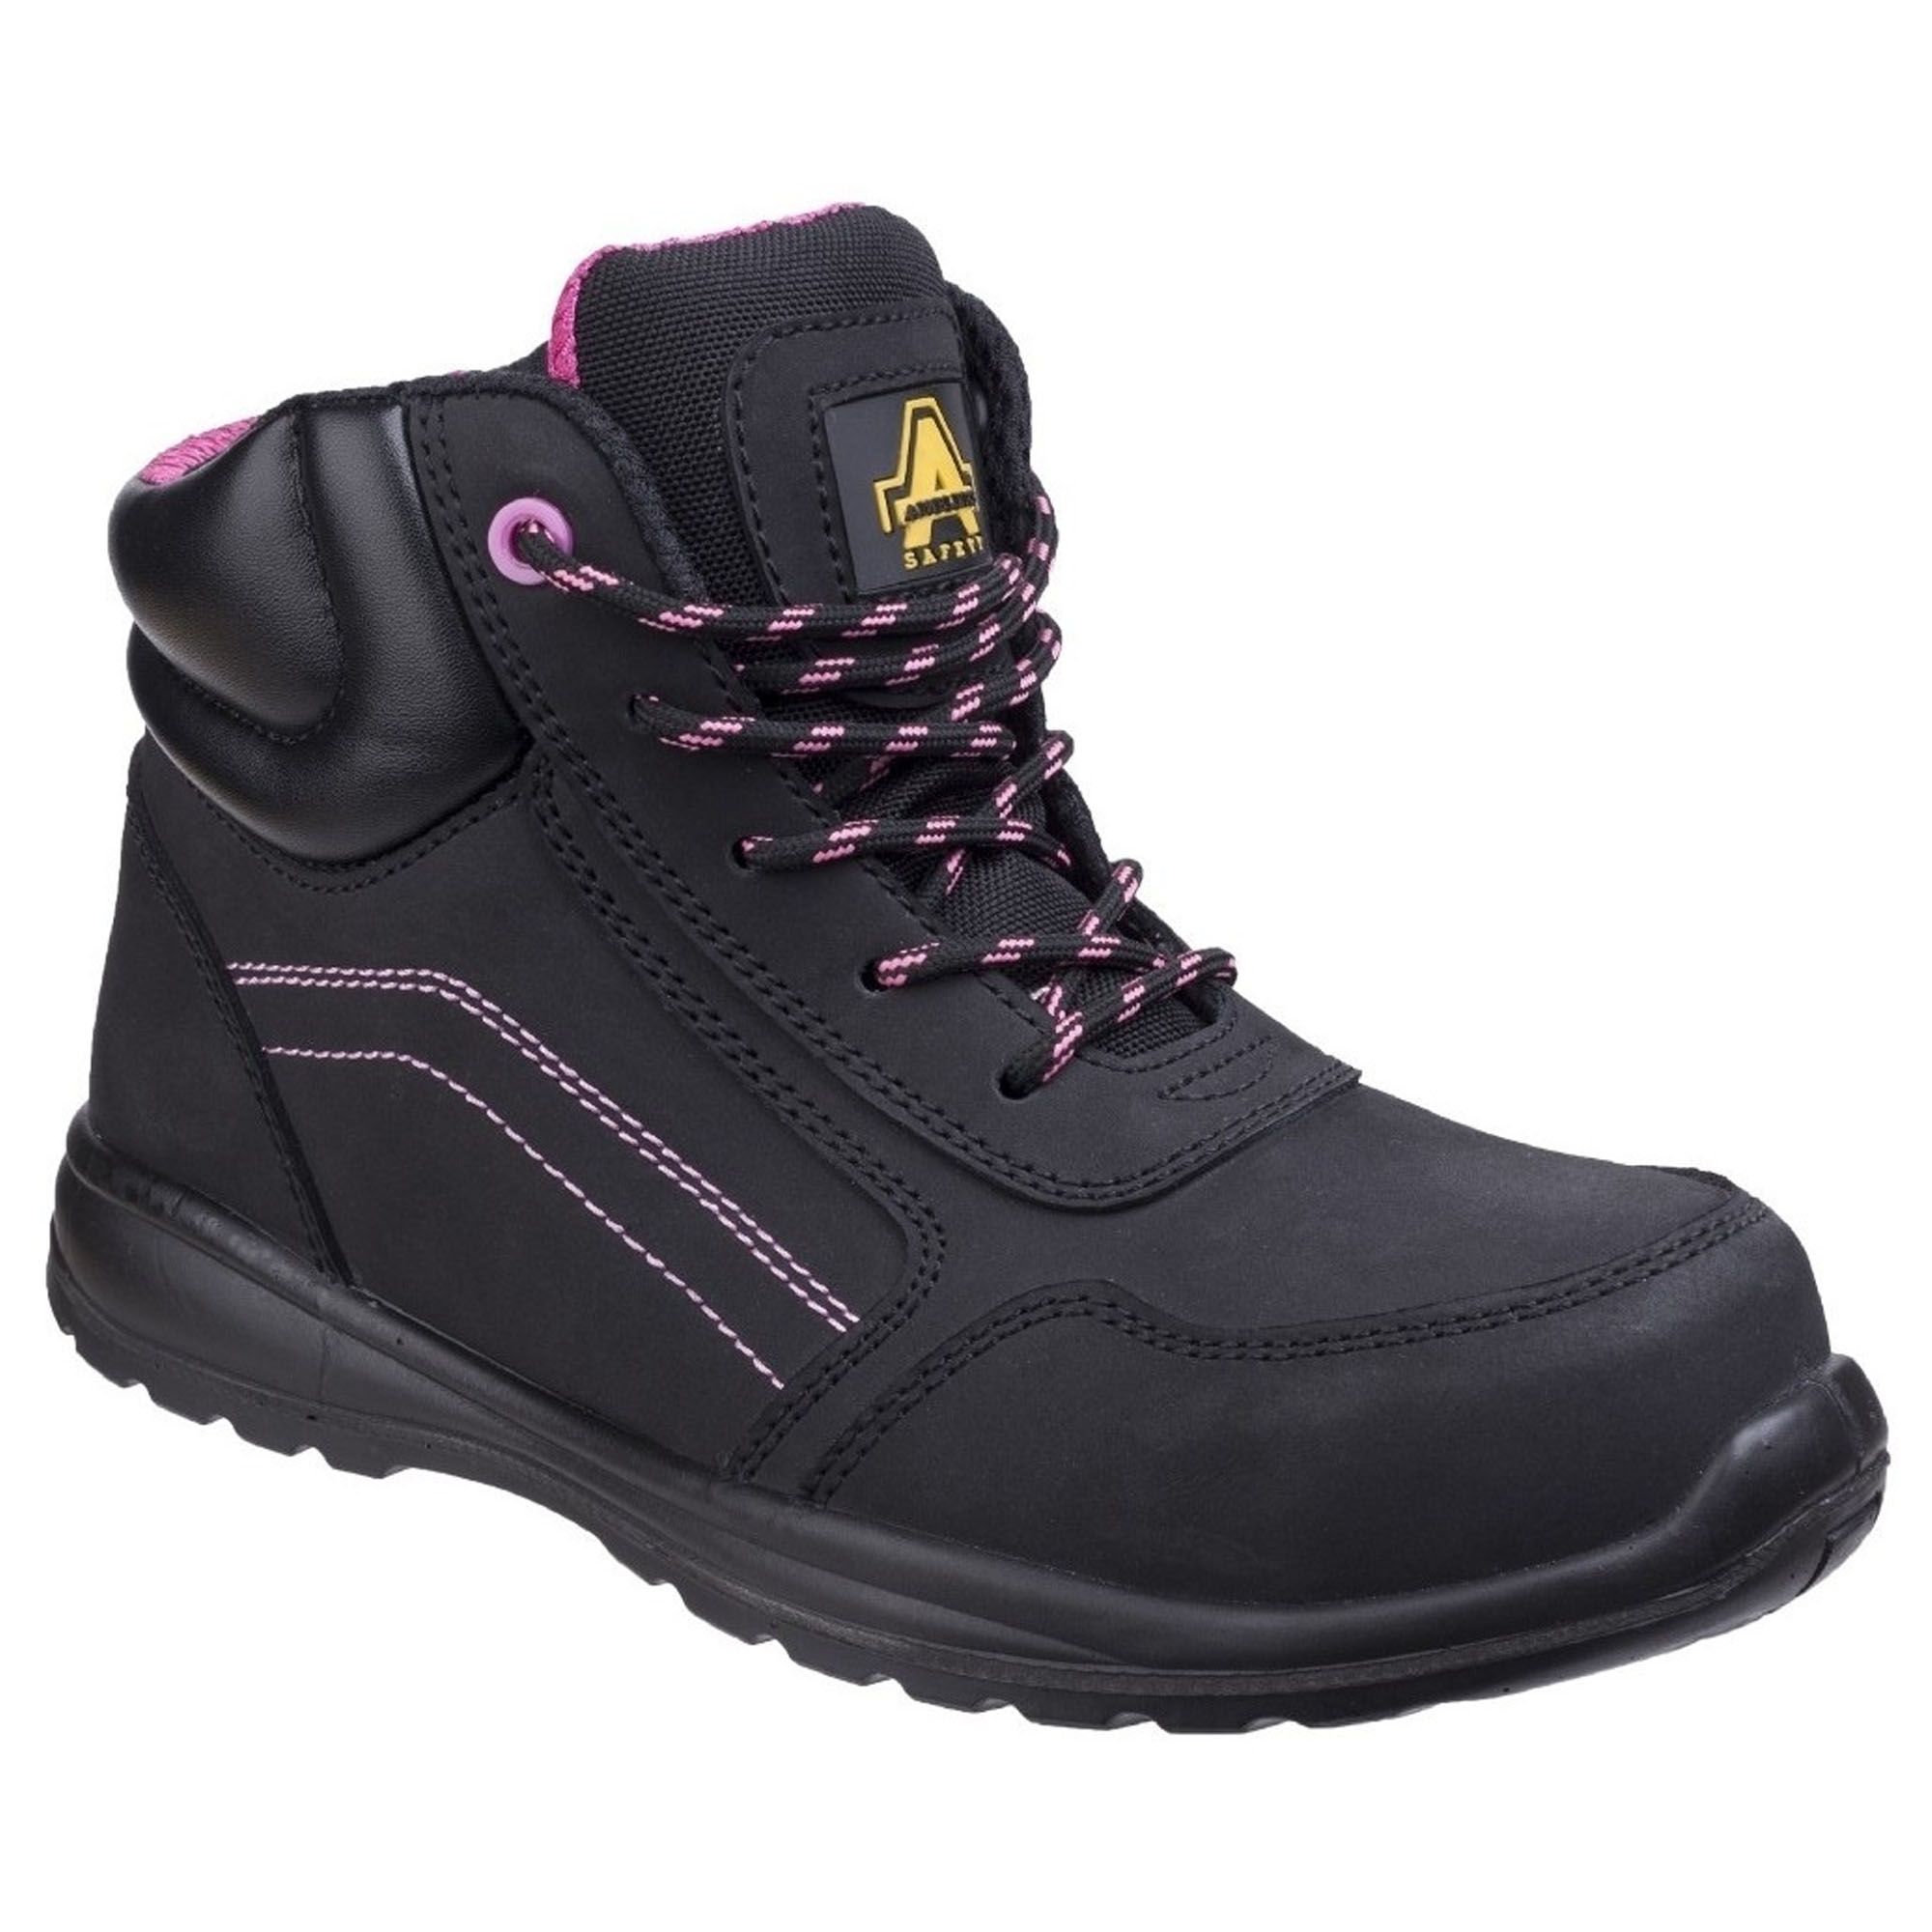 dfa9a4e251a Amblers,LYDIAWO,Lydia Composite Safety Boot - Black/Pink